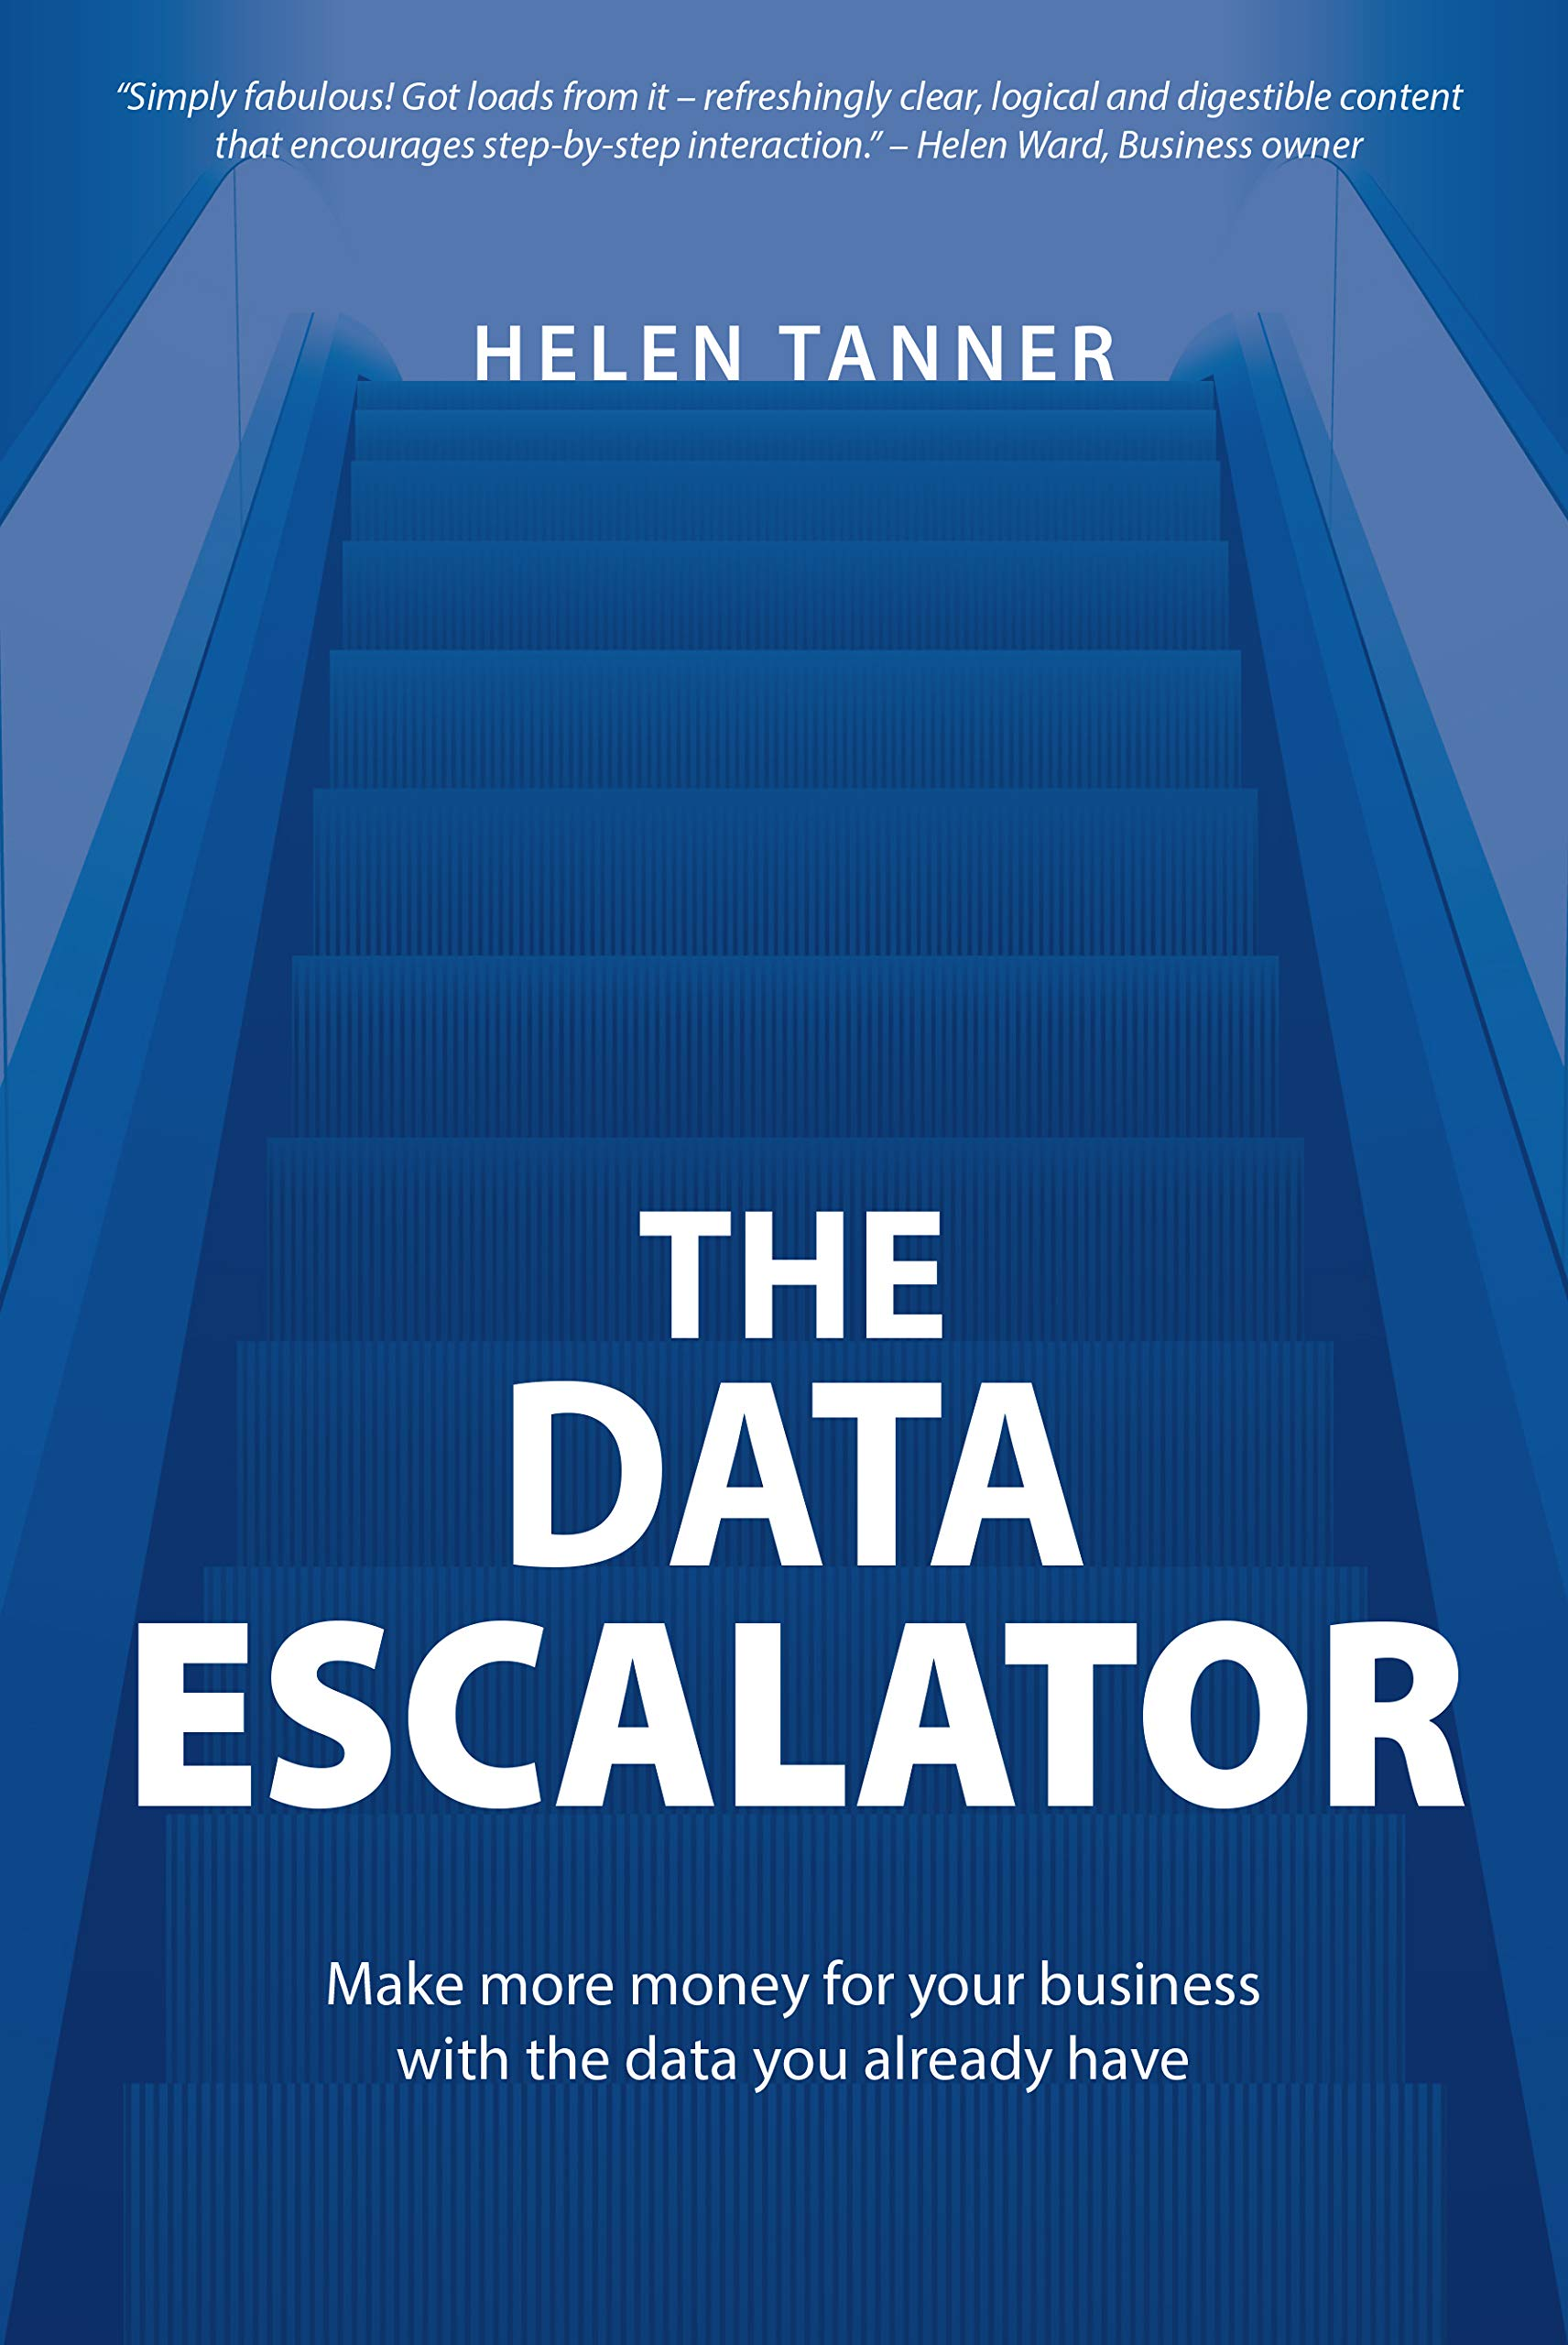 The Data Escalator: Make more money for your business with the data you already have